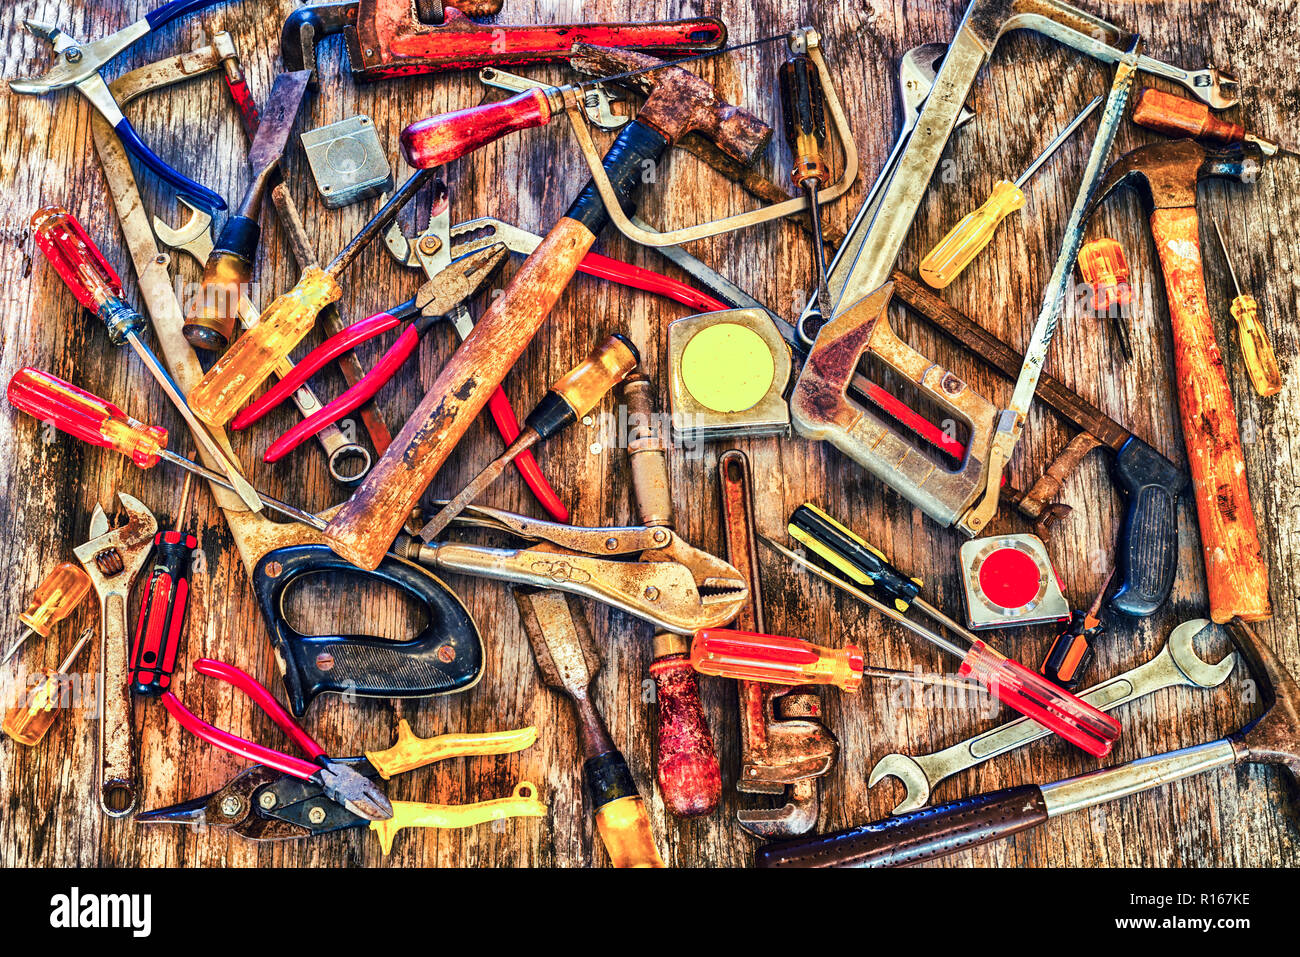 Close up of a group of tools on a wooden background. Stock Photo